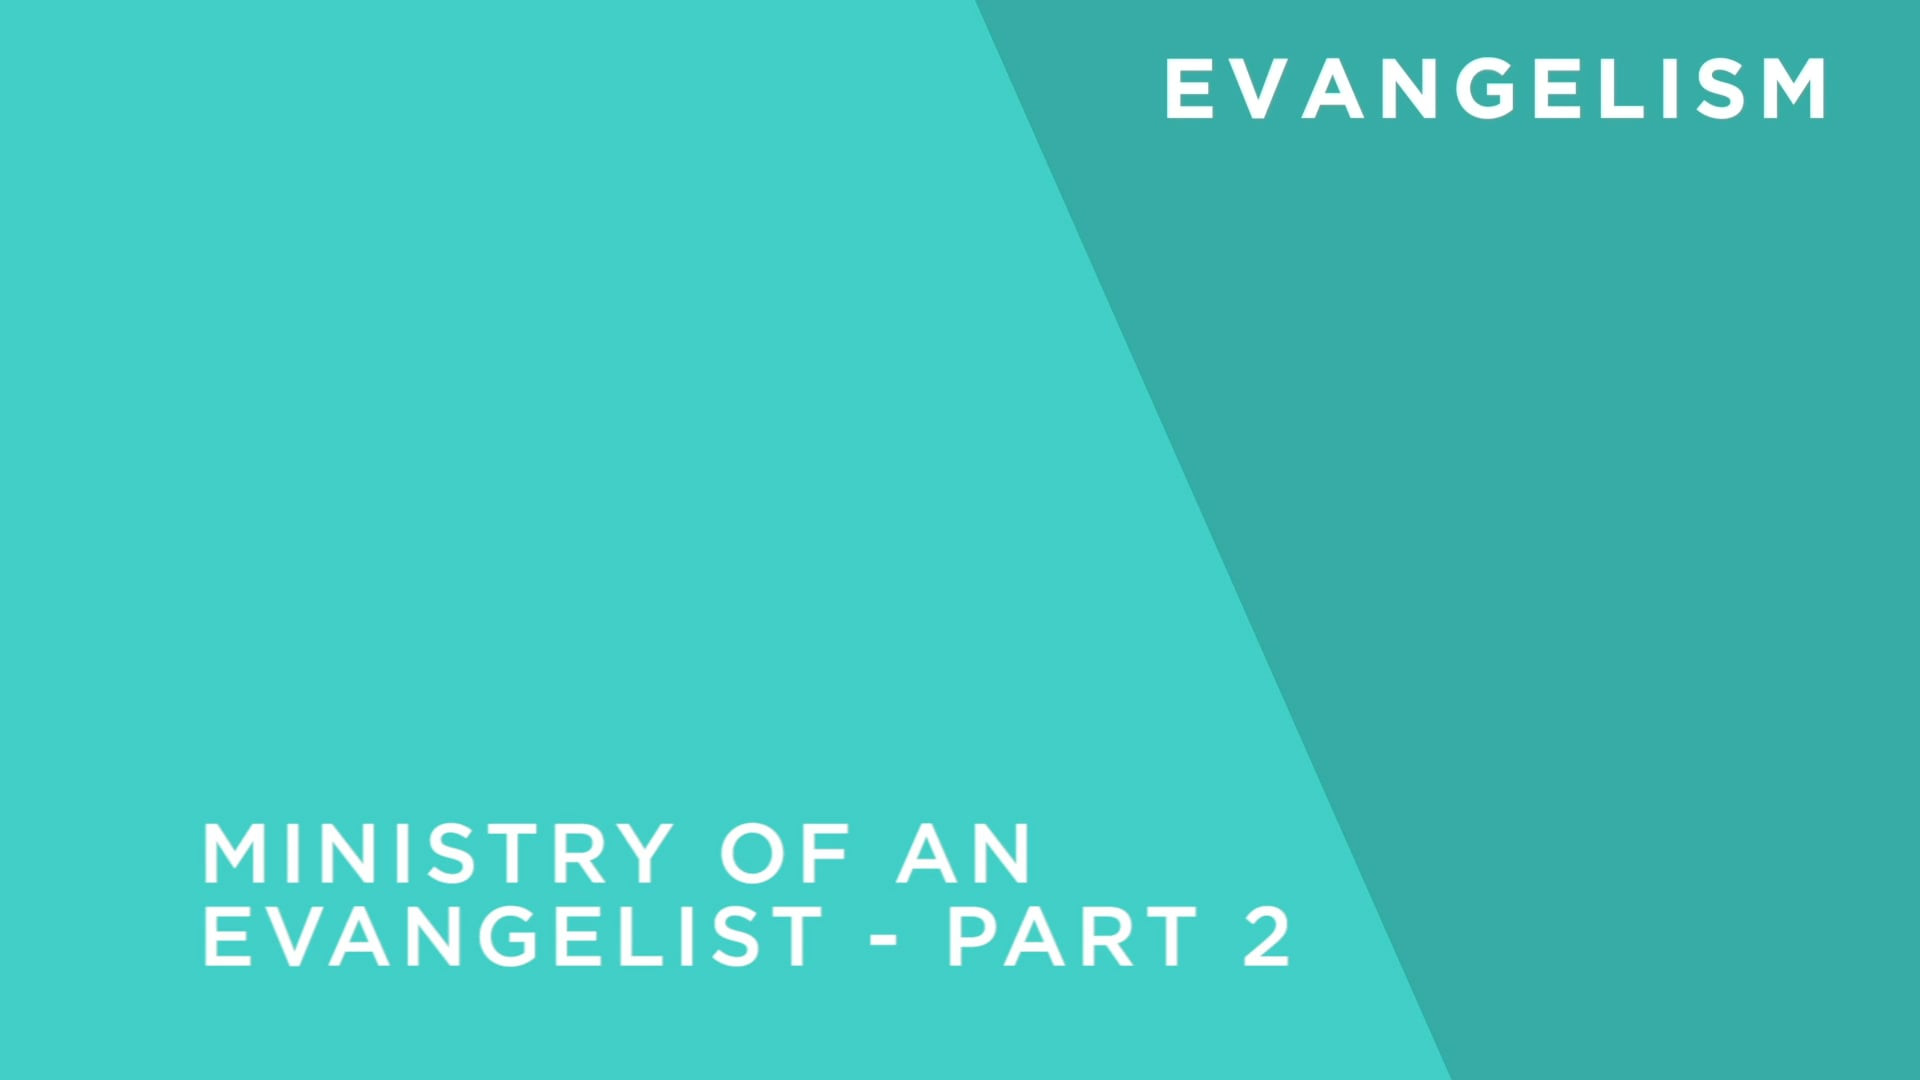 The Ministry of an Evangelist - Part 2